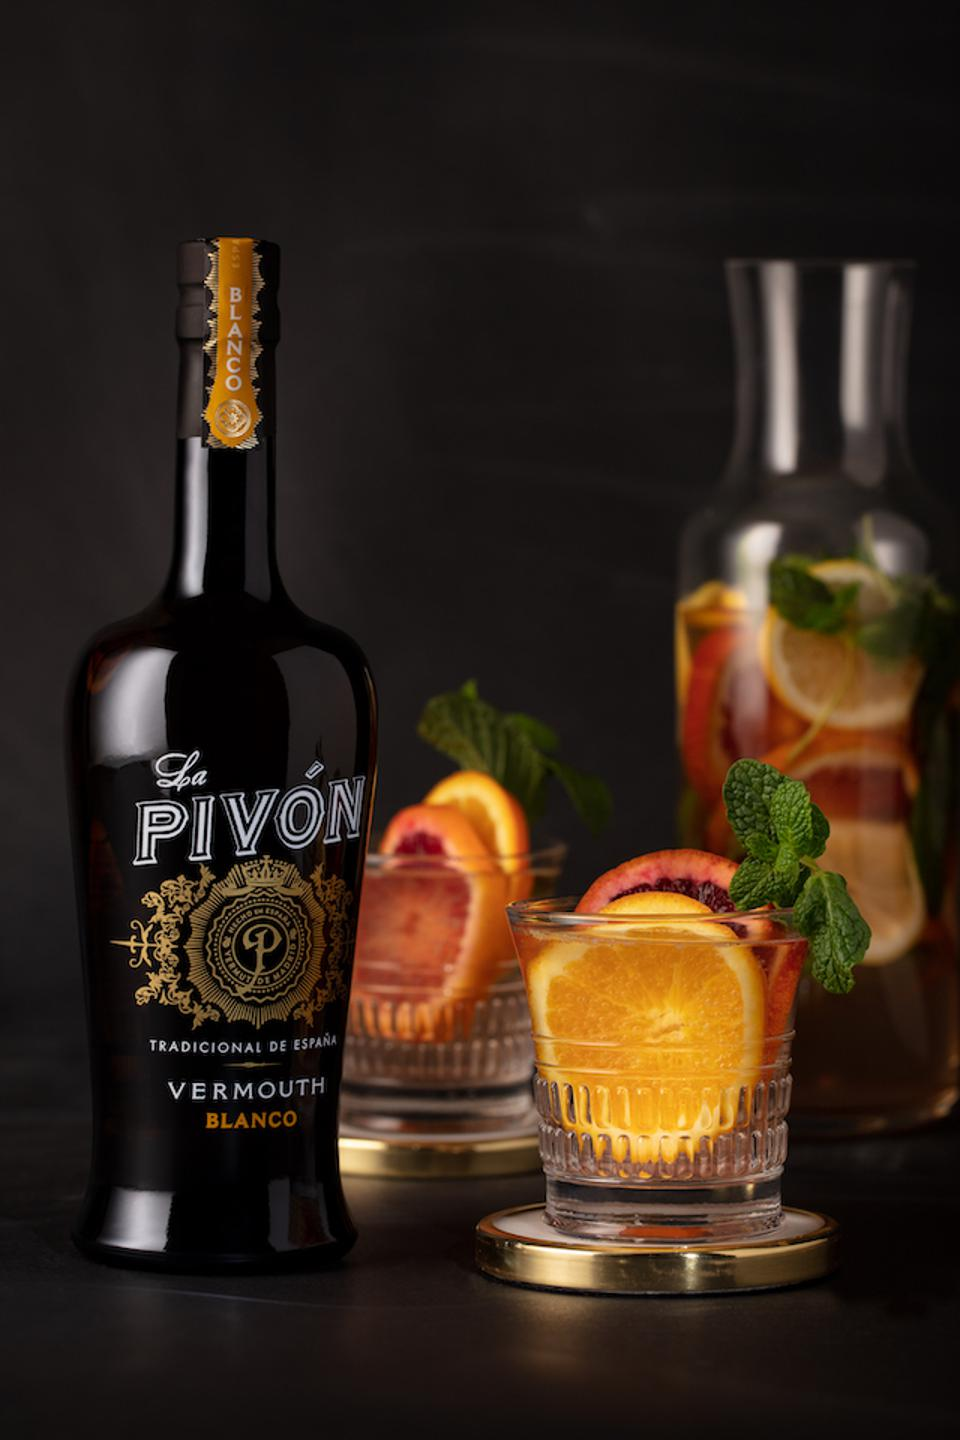 a bottle of la pivon white vermouth and a short glass with some orange slices in it.